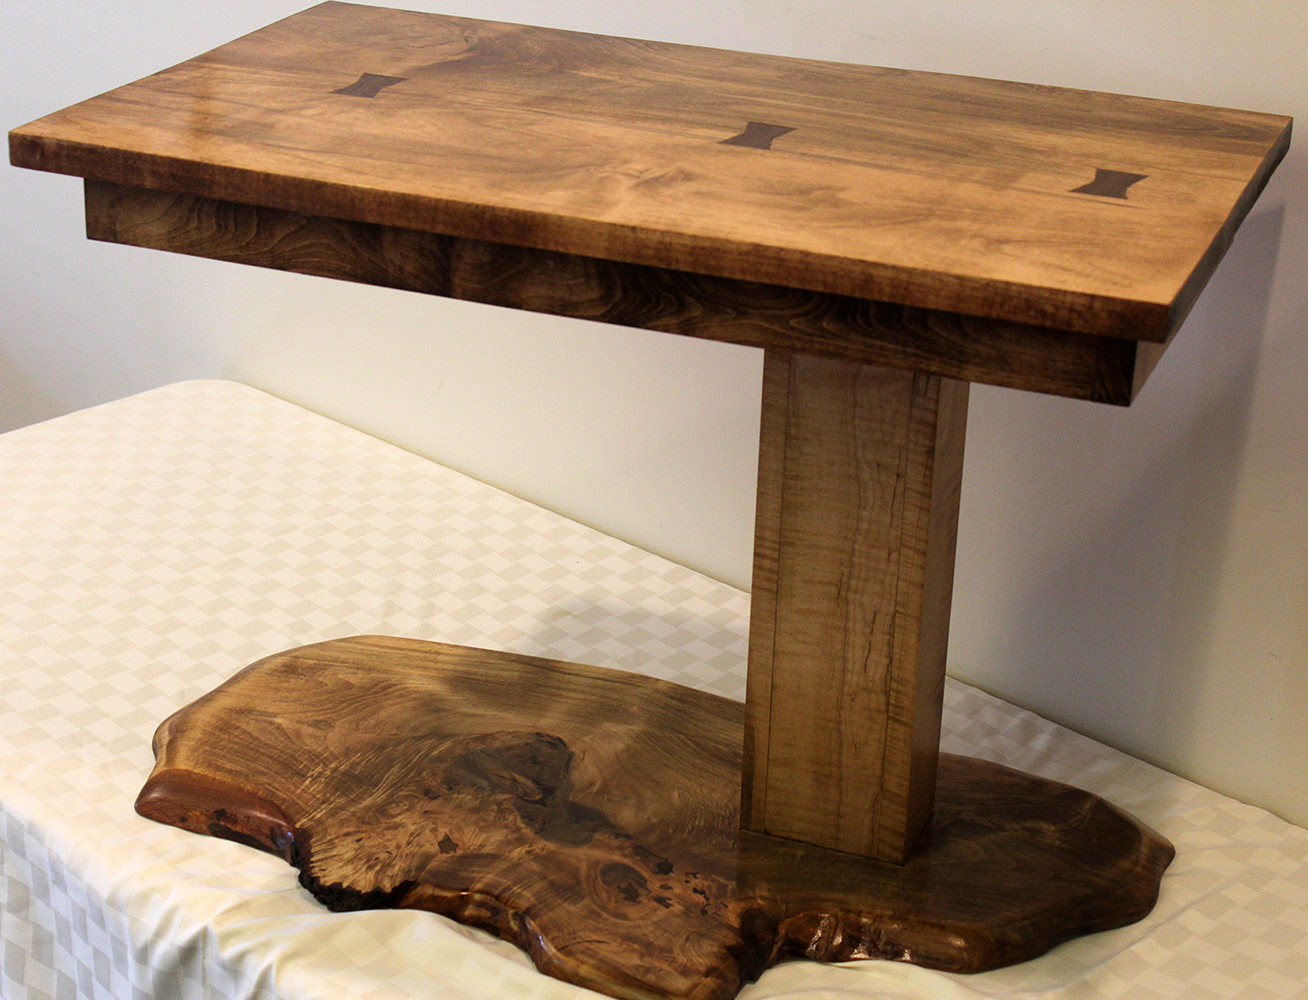 Spalted Maple Table - Donated by Charles Leasure